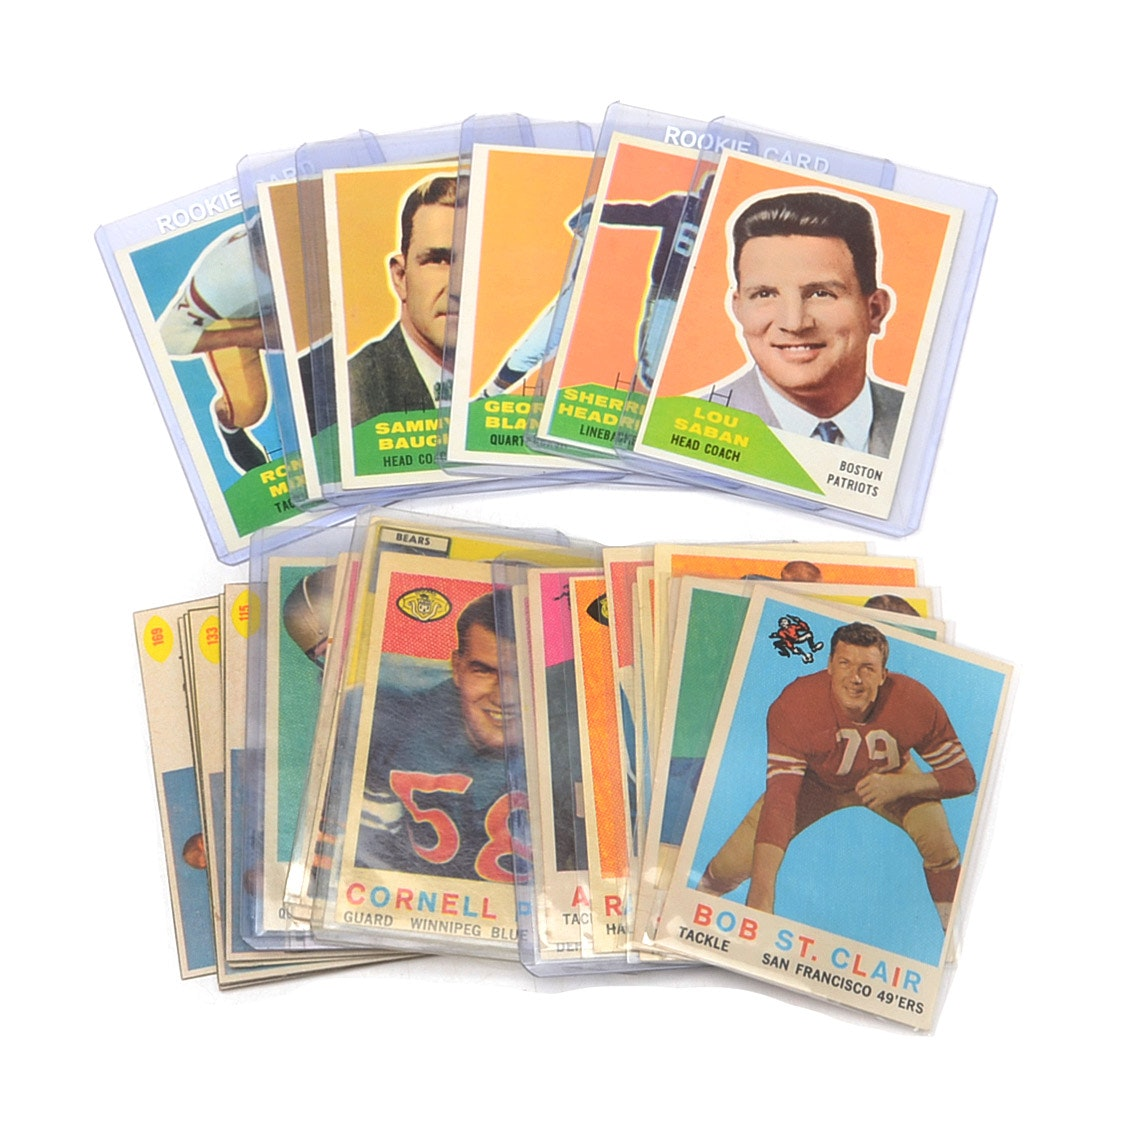 1950s-1960s Topps, Fleer, and Post Cereal Football Cards